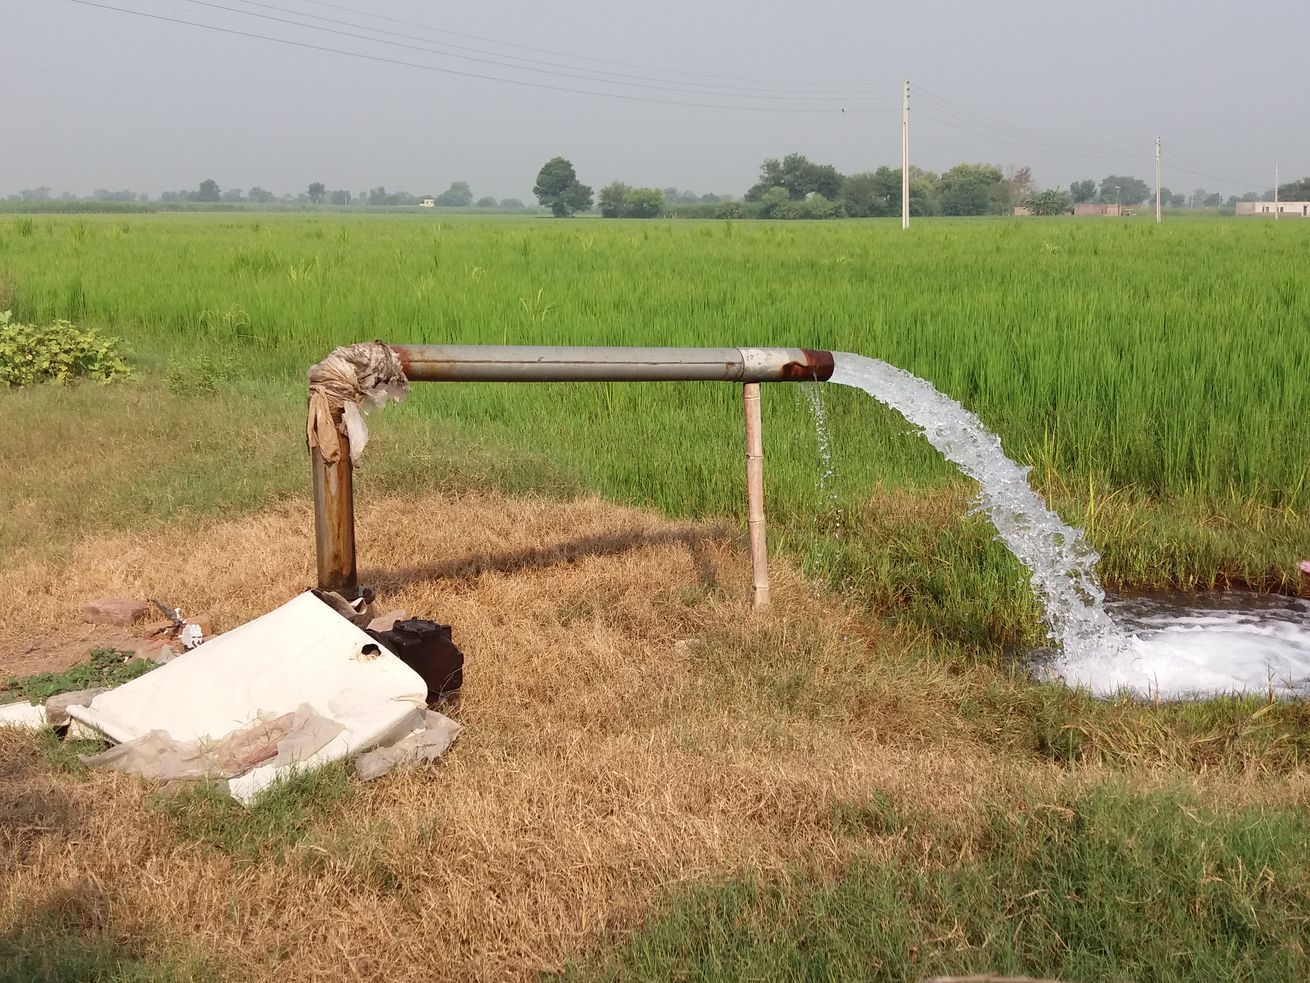 Tube wells are bored into the ground to provide clean drinking water.